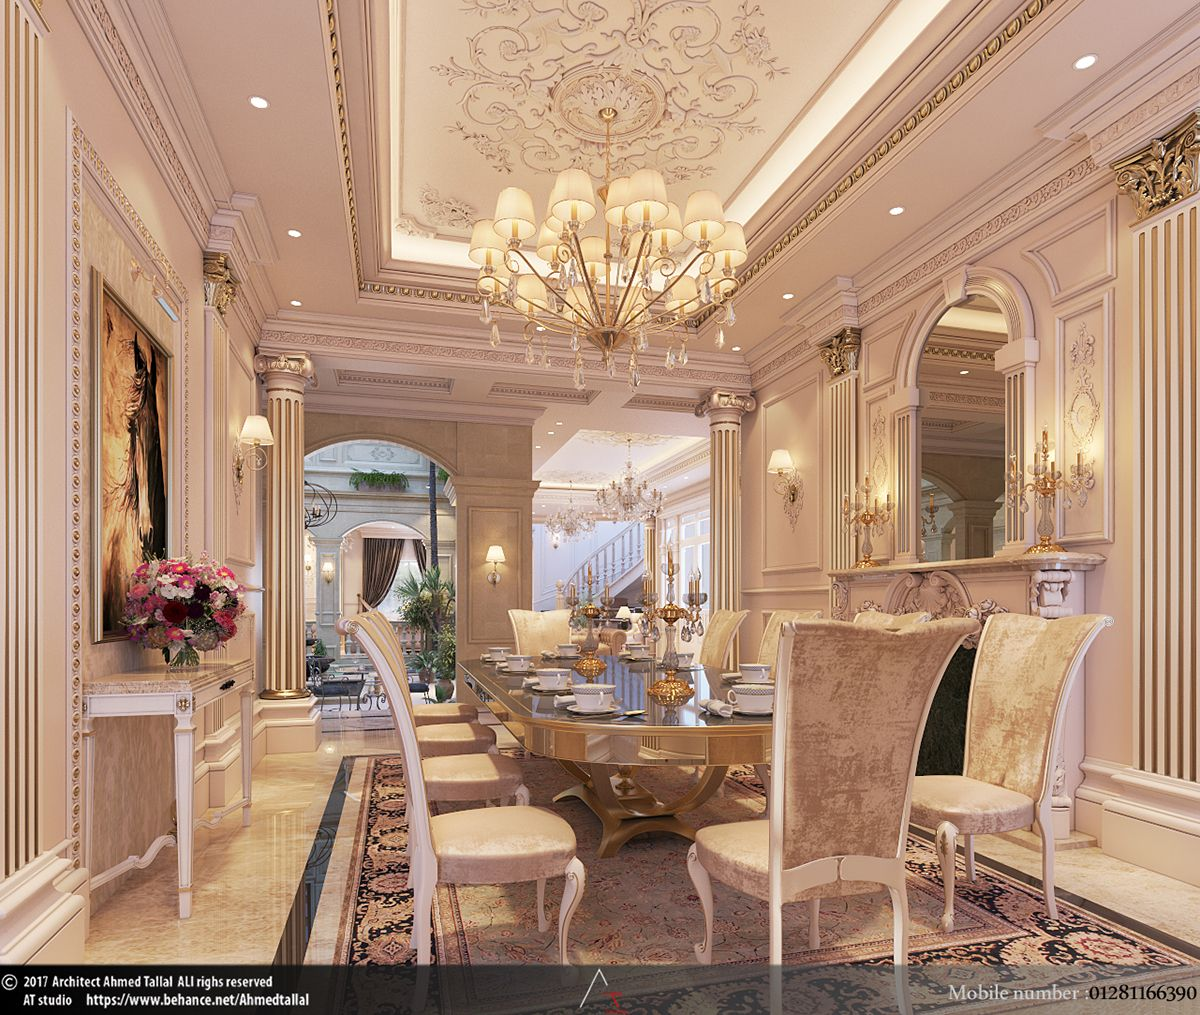 Home Decor 2012 Luxury Homes Interior Decoration Living: In The Heart Of The Maison On Behance